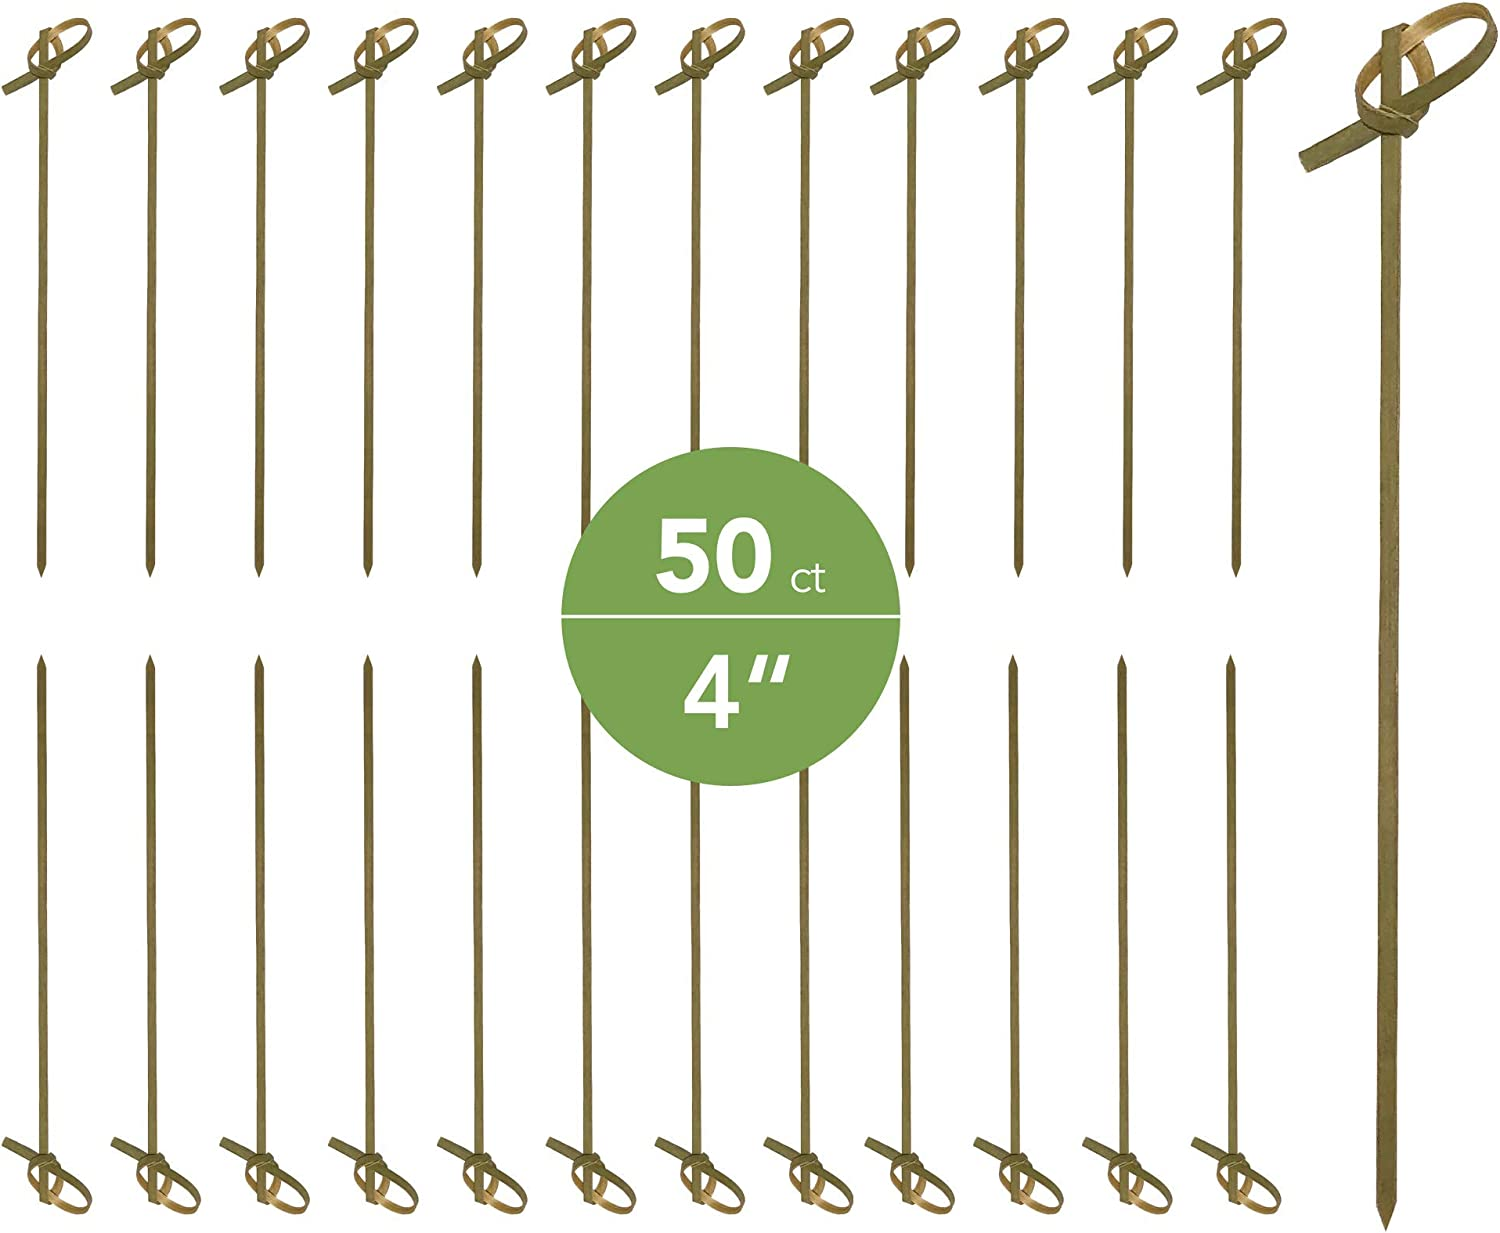 JapanBargain 1596, Bamboo Cocktail Picks Skewers for Appetizer Snack Sandwich Finger Food Tapas Fruit Kabob BBQ Hors D'oeuvre Twisted End Knotted Bamboo Sticks, 4 inch, 50pcs